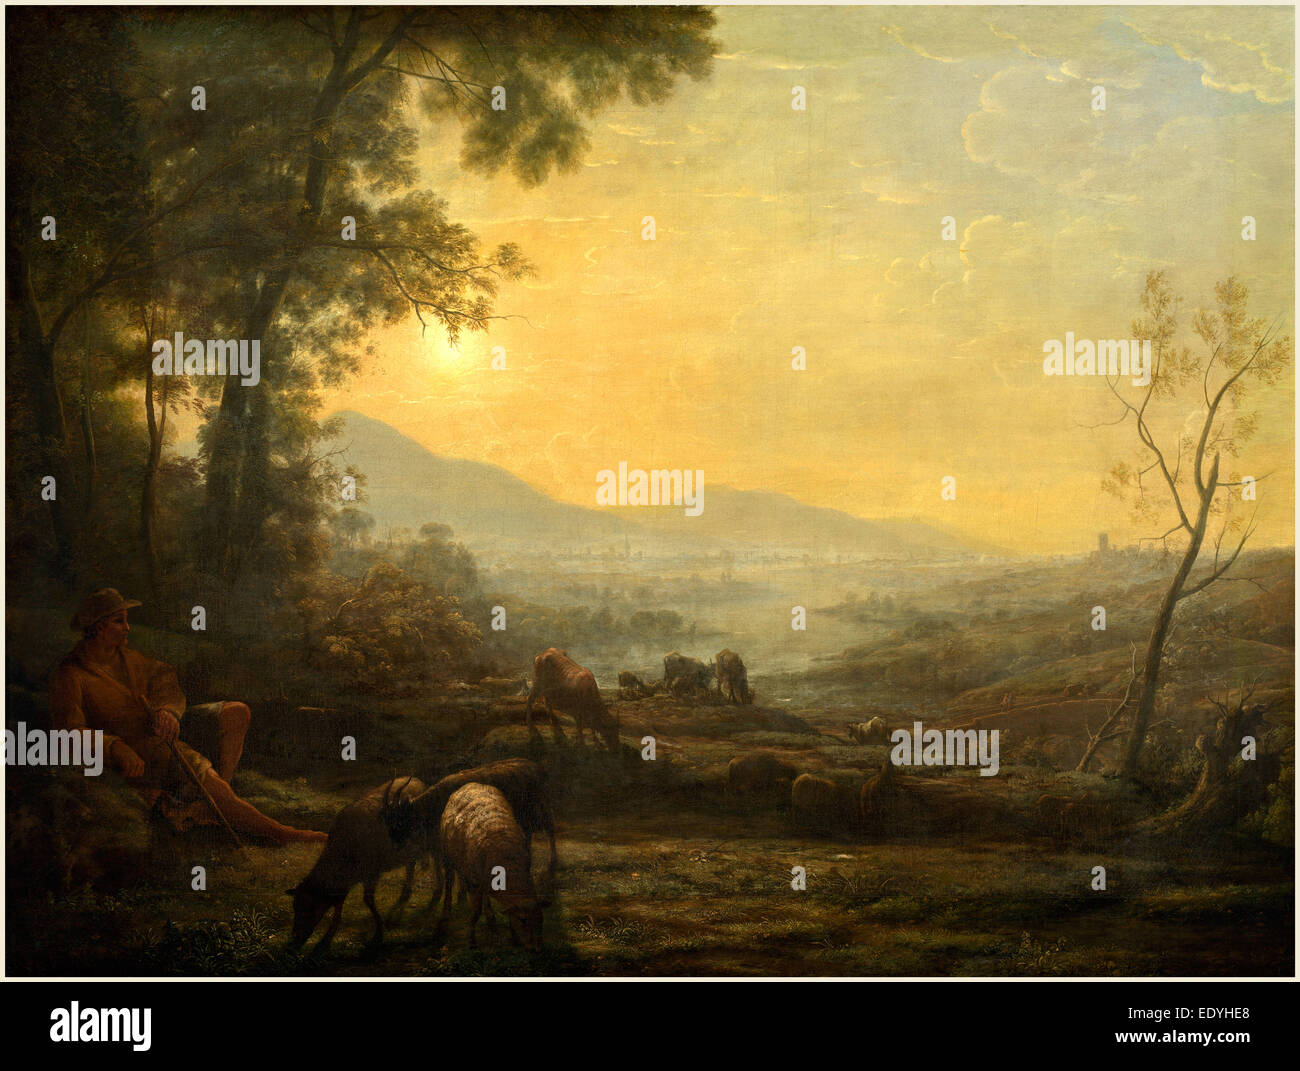 Follower of Claude Lorrain, The Herdsman, 17th or 18th century, oil on canvas - Stock Image